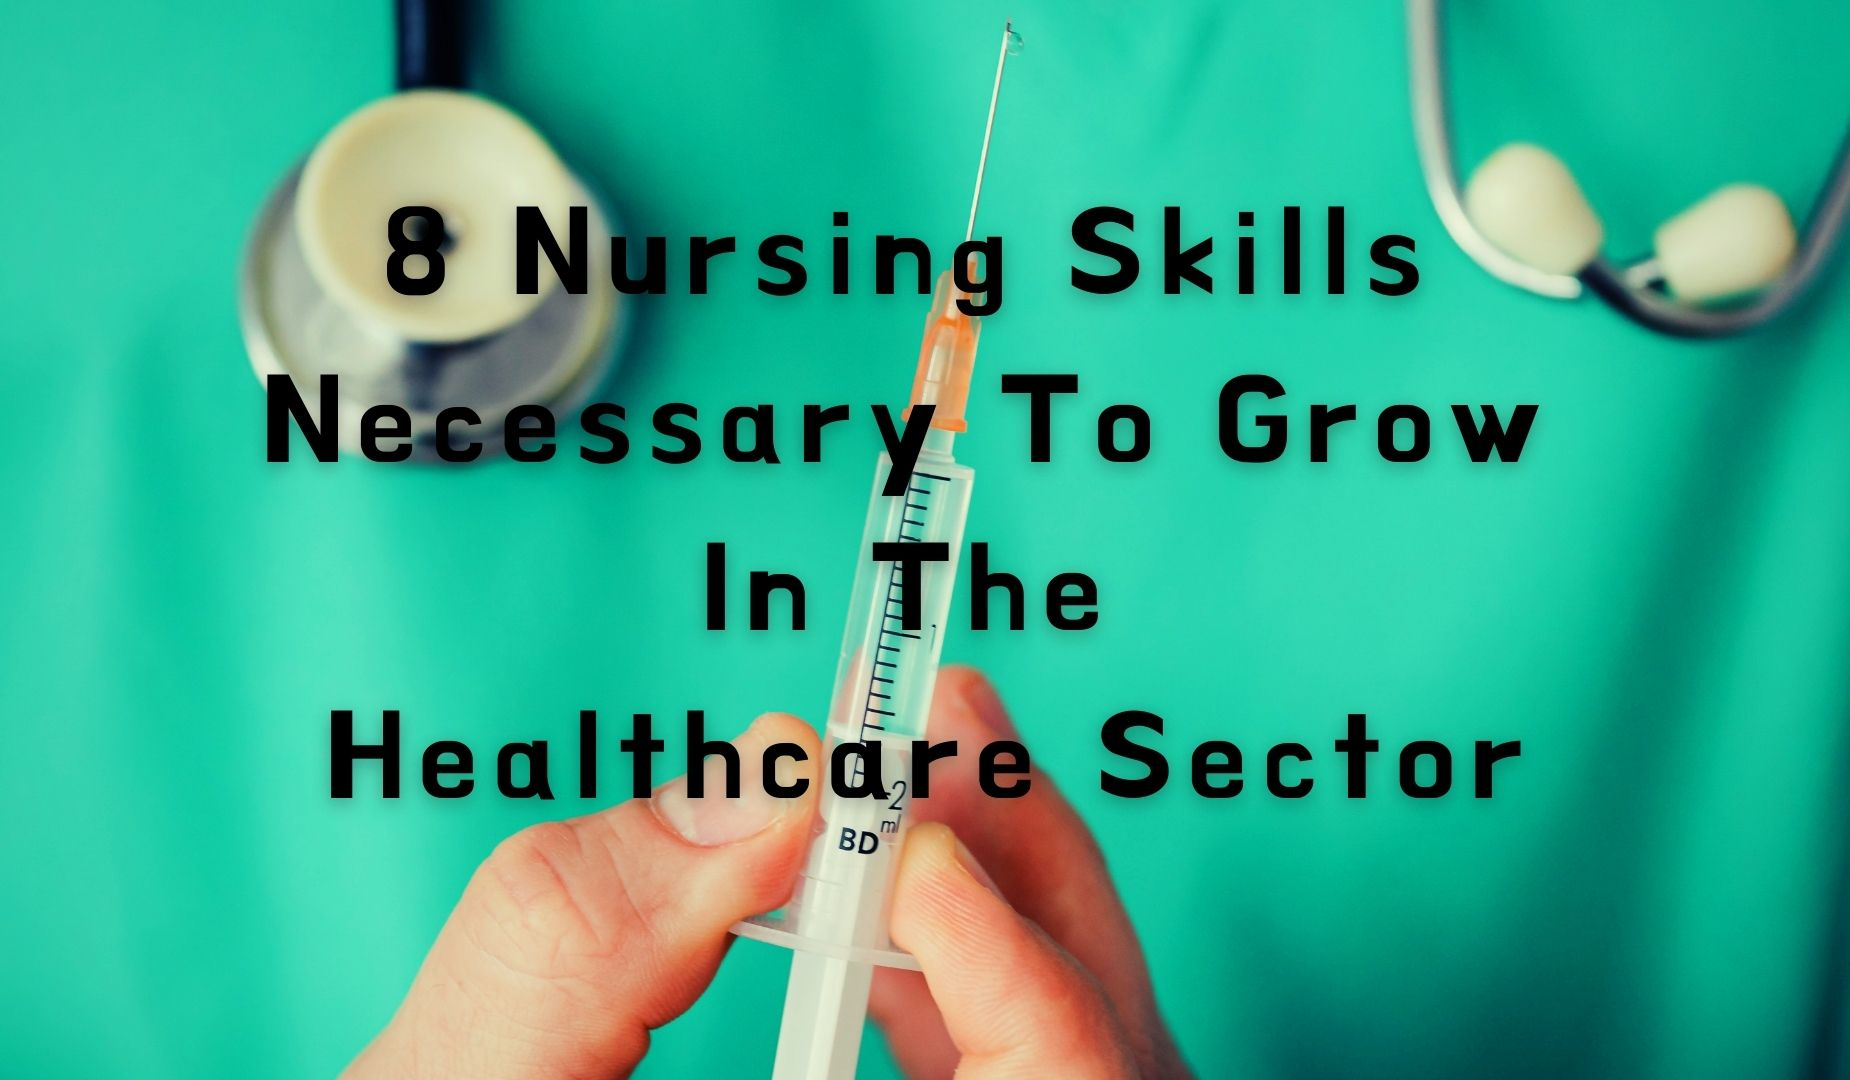 8 Nursing Skills Necessary to Grow In the Healthcare Sector